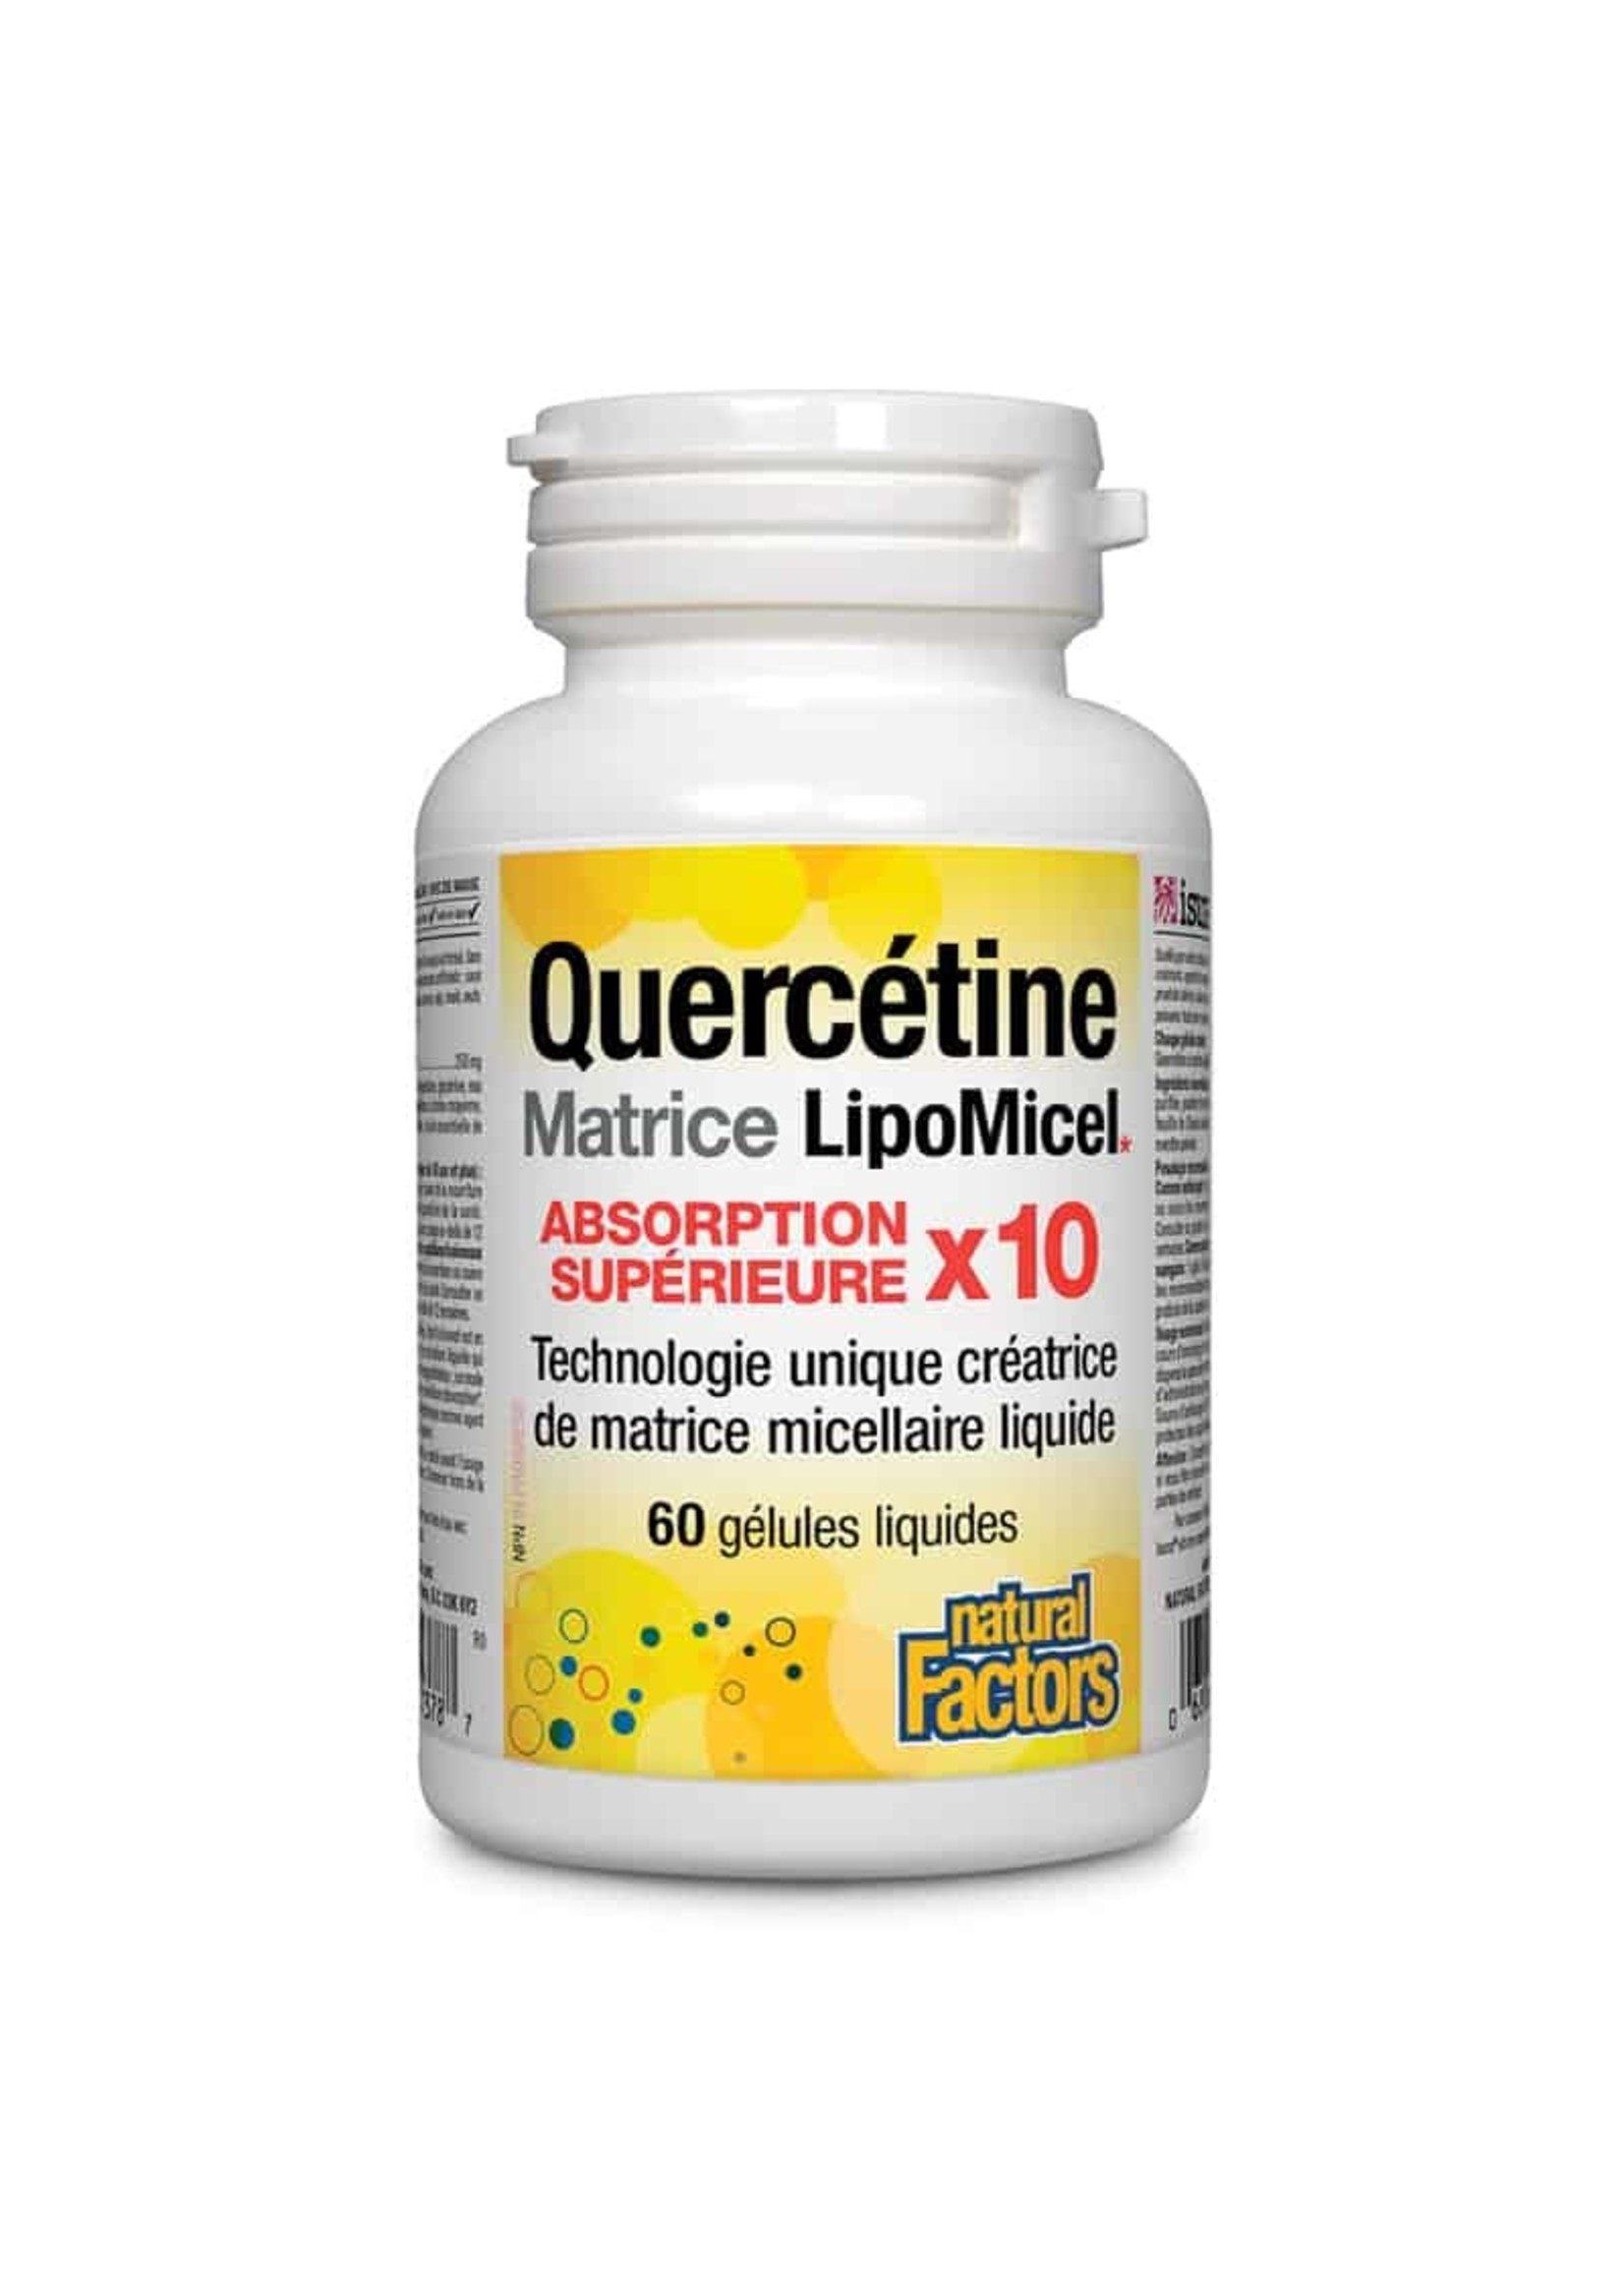 Natural Factors Quercetin LipoMicel Matrix